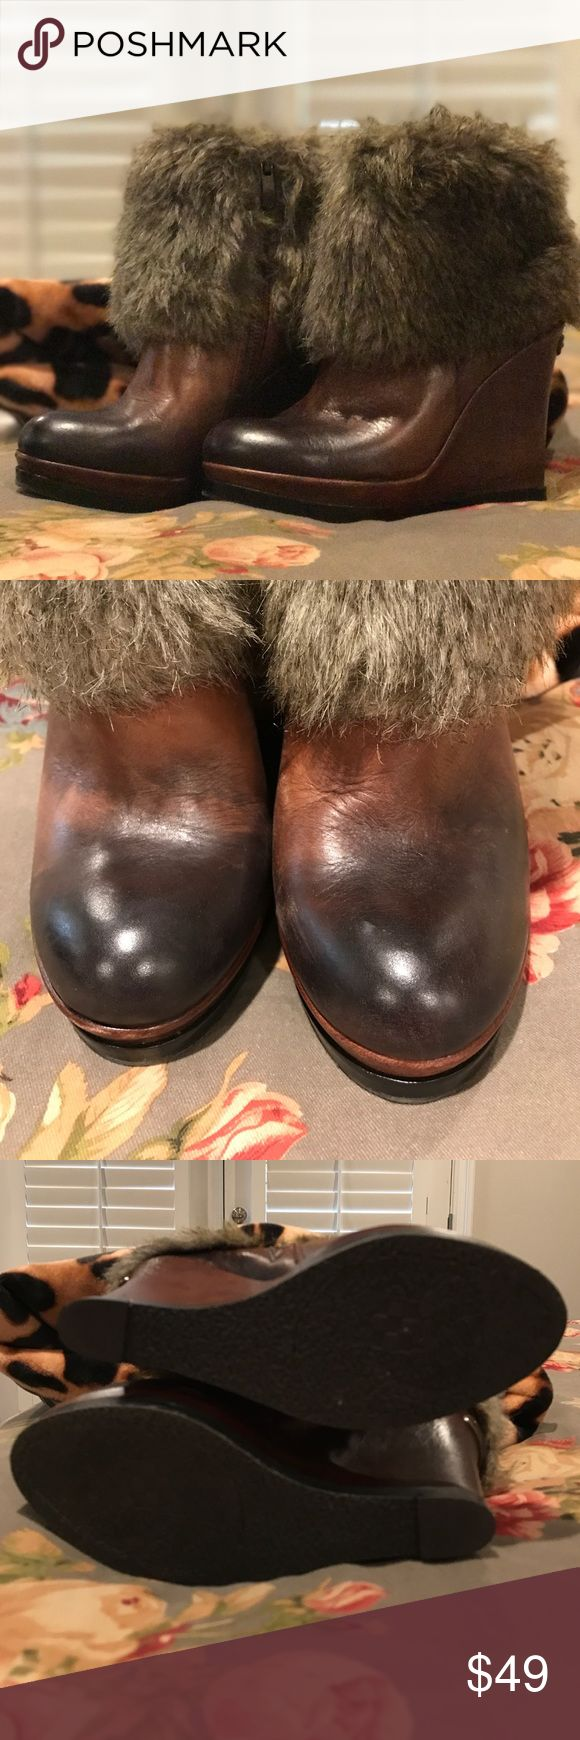 Vince Camuto fur ankle boots Vince Camuto wedge fur ankle boots. Size 6.5. Only worn twice. Beautiful burnt brown color with faux fur around the top. Such cute boots. Vince Camuto Shoes Ankle Boots & Booties